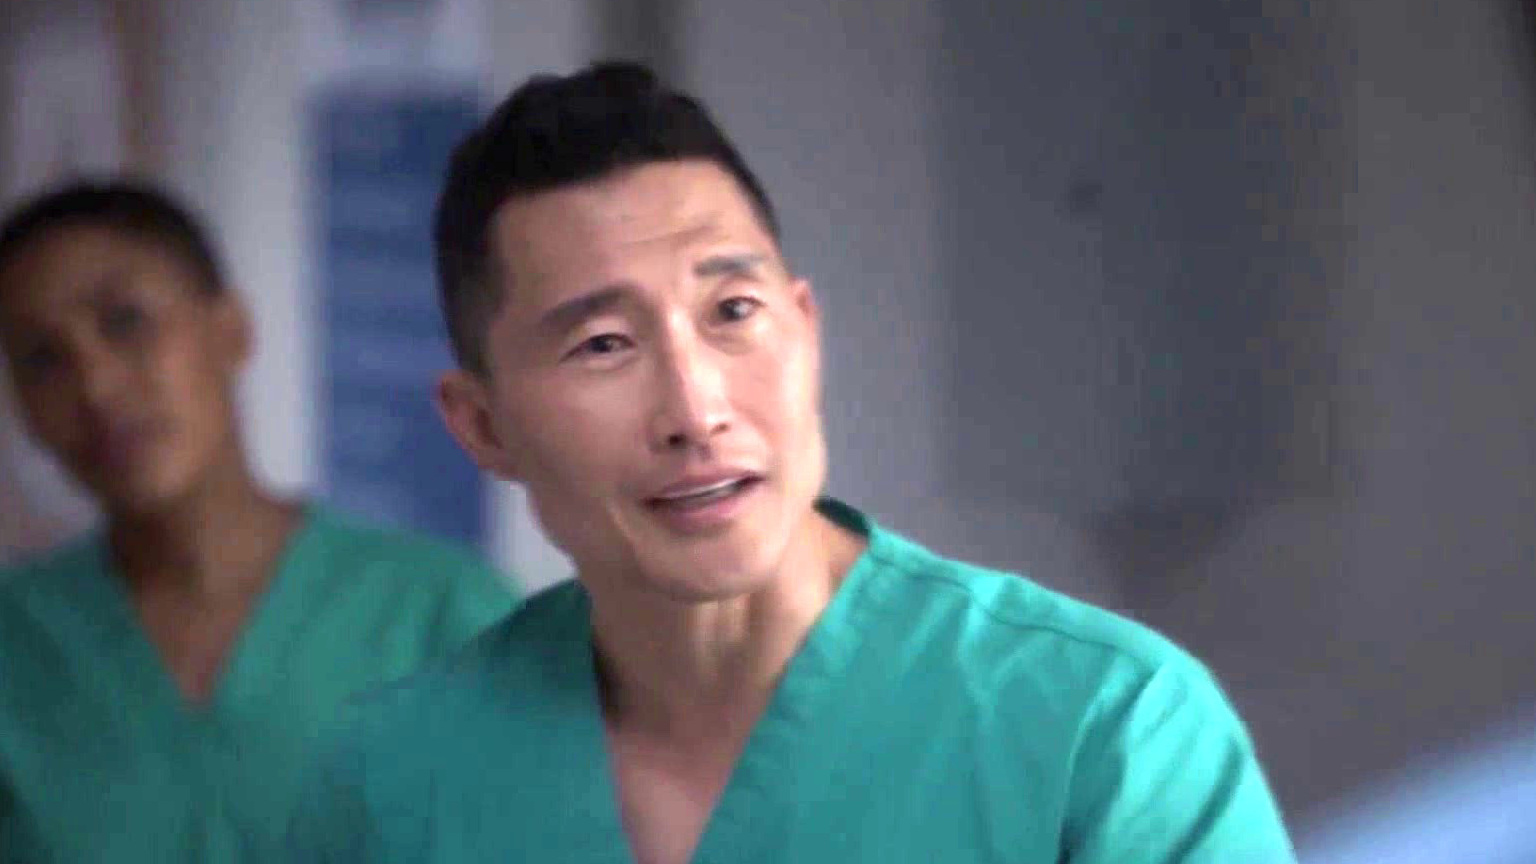 New Amsterdam: Get To Know Dr. Cassian Shin